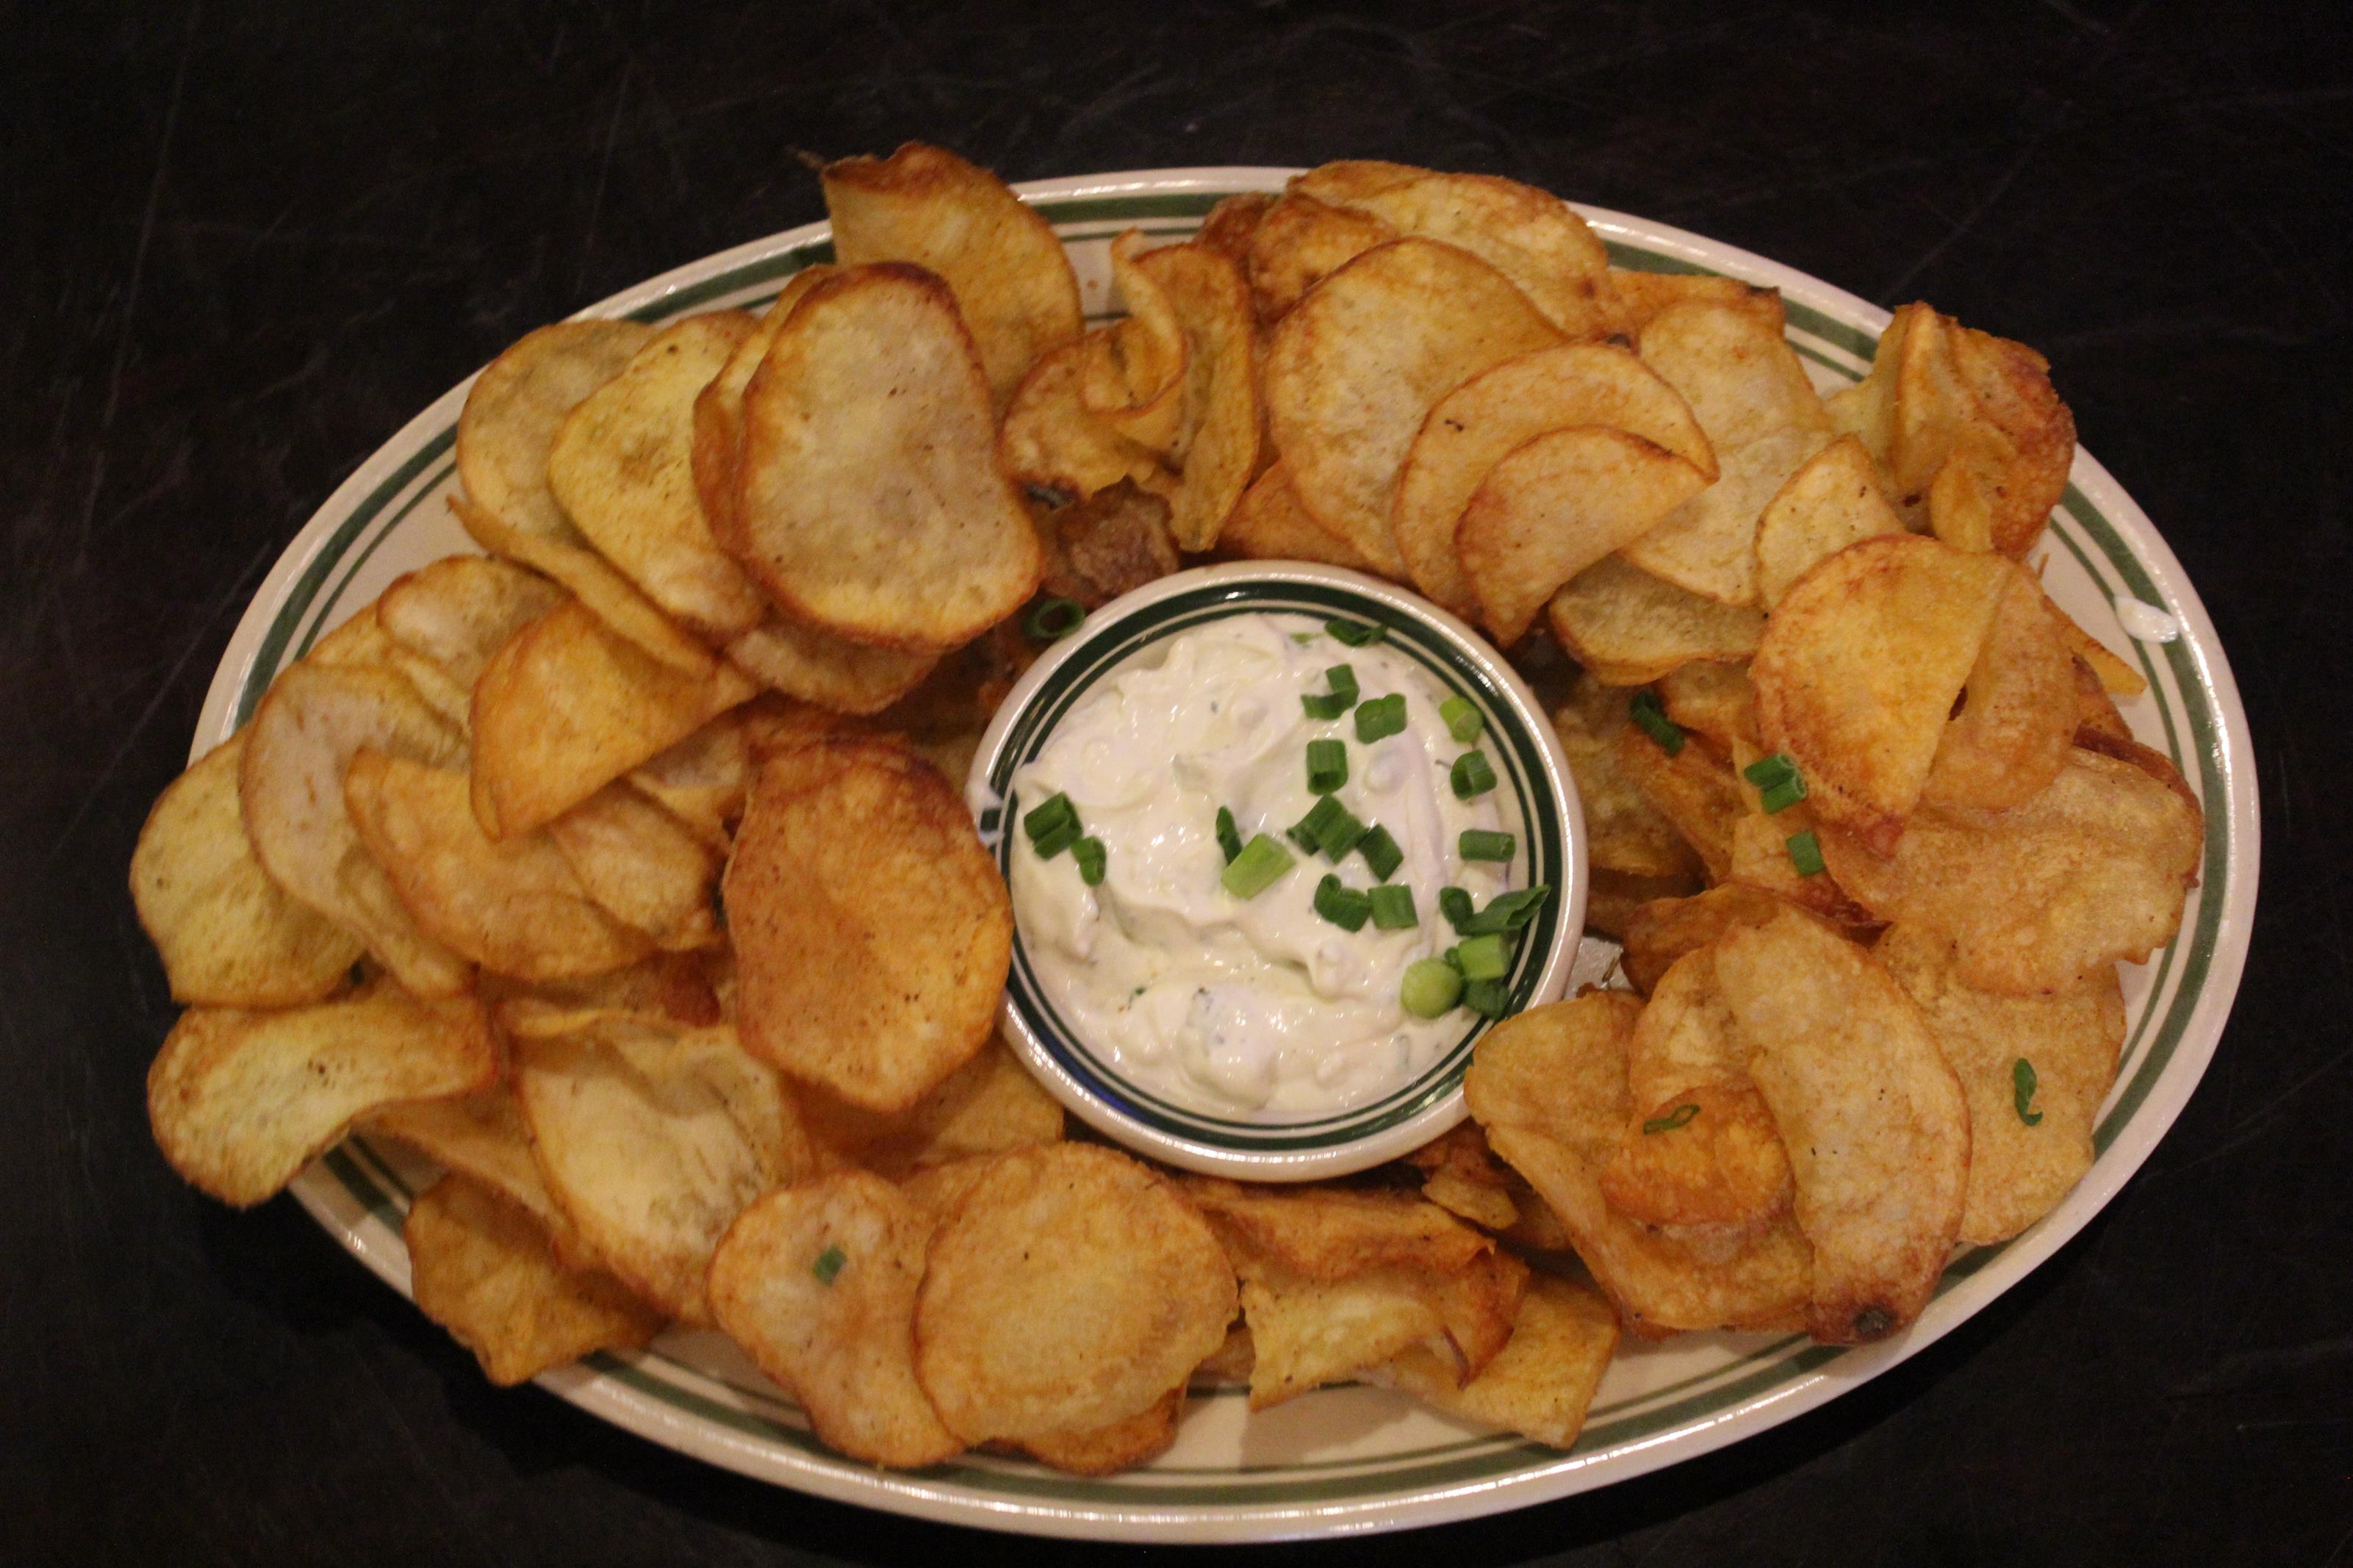 Kettle chips and onion dip